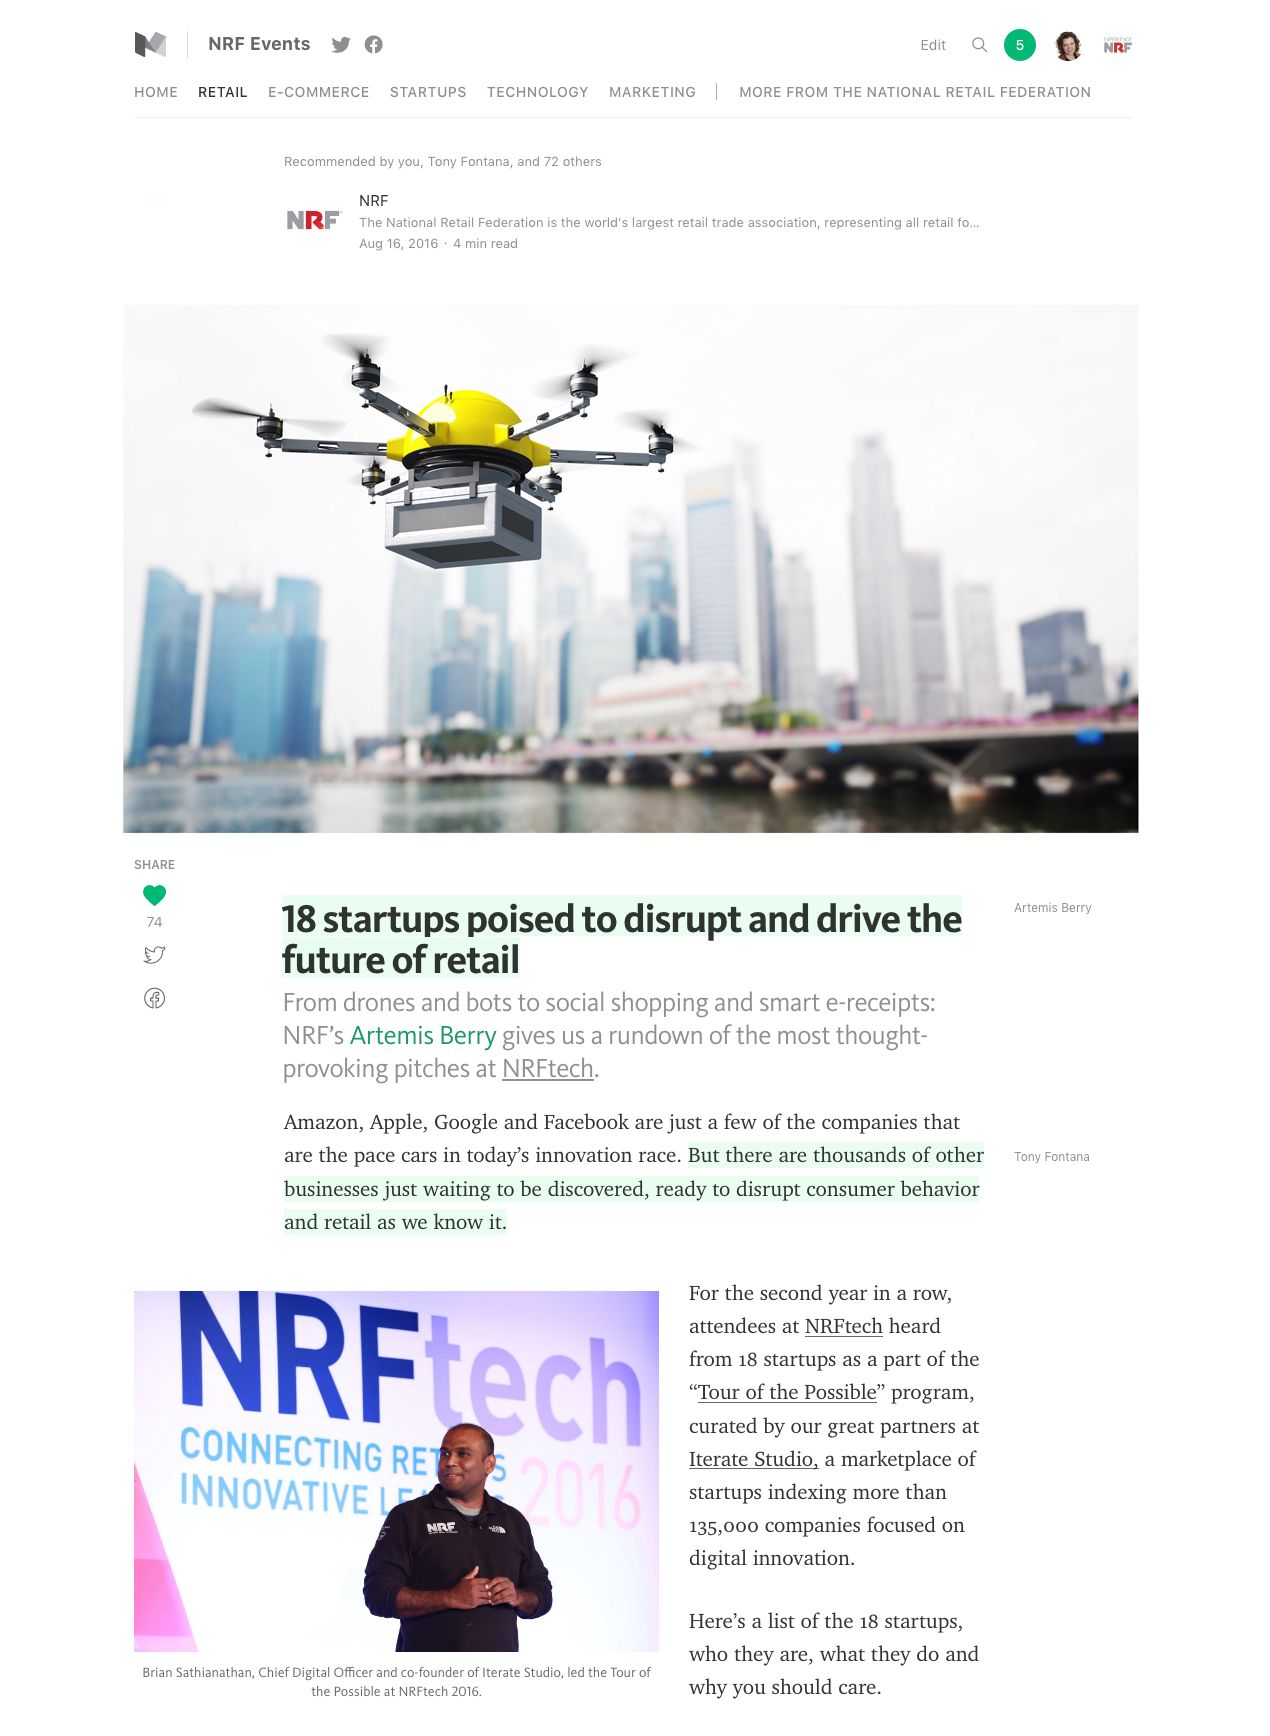 Stories about startups  are among the most popular in the  NRF Events publication on Medium .